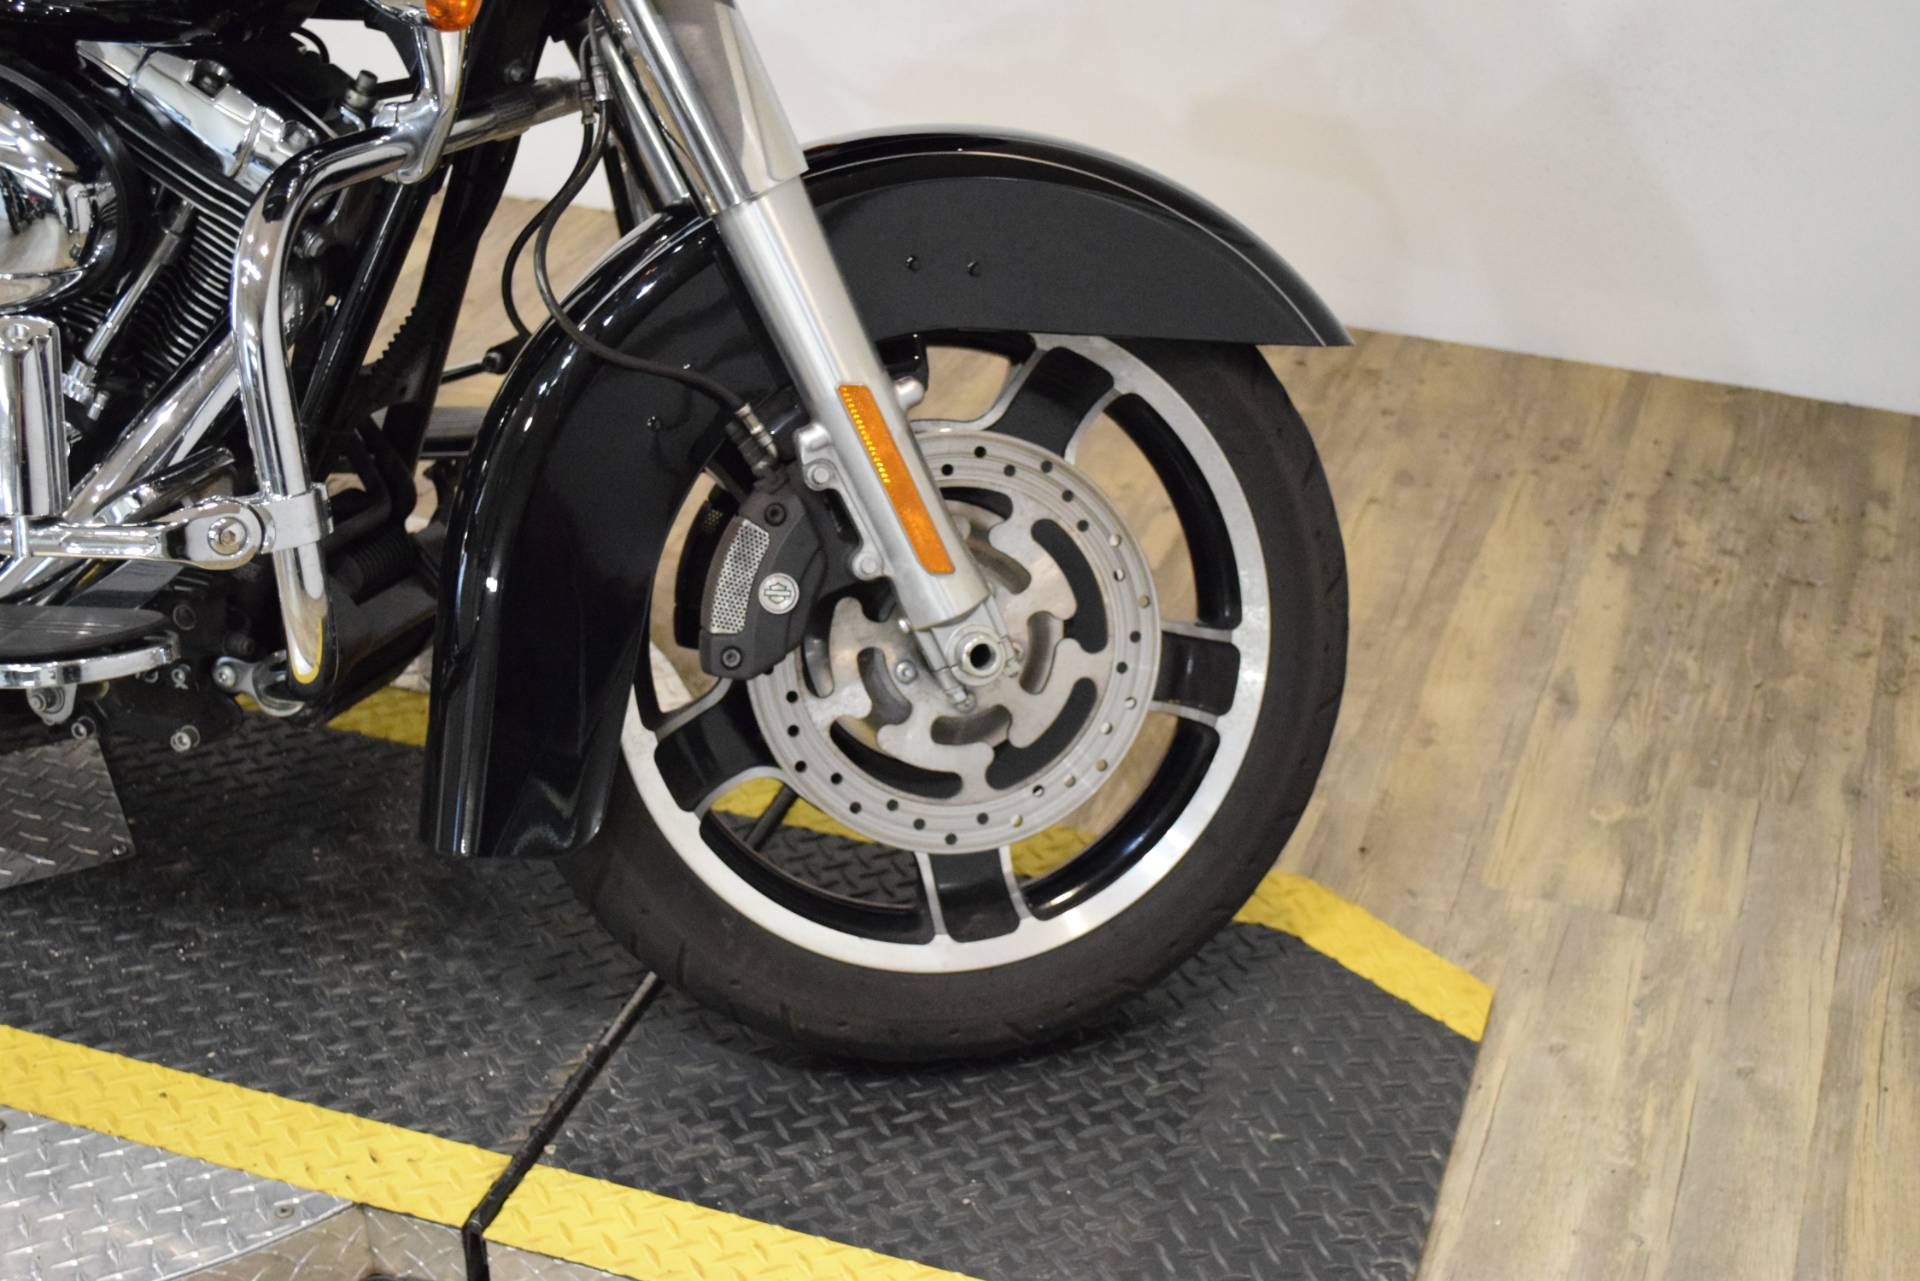 2013 Harley-Davidson Road Glide® Custom in Wauconda, Illinois - Photo 2